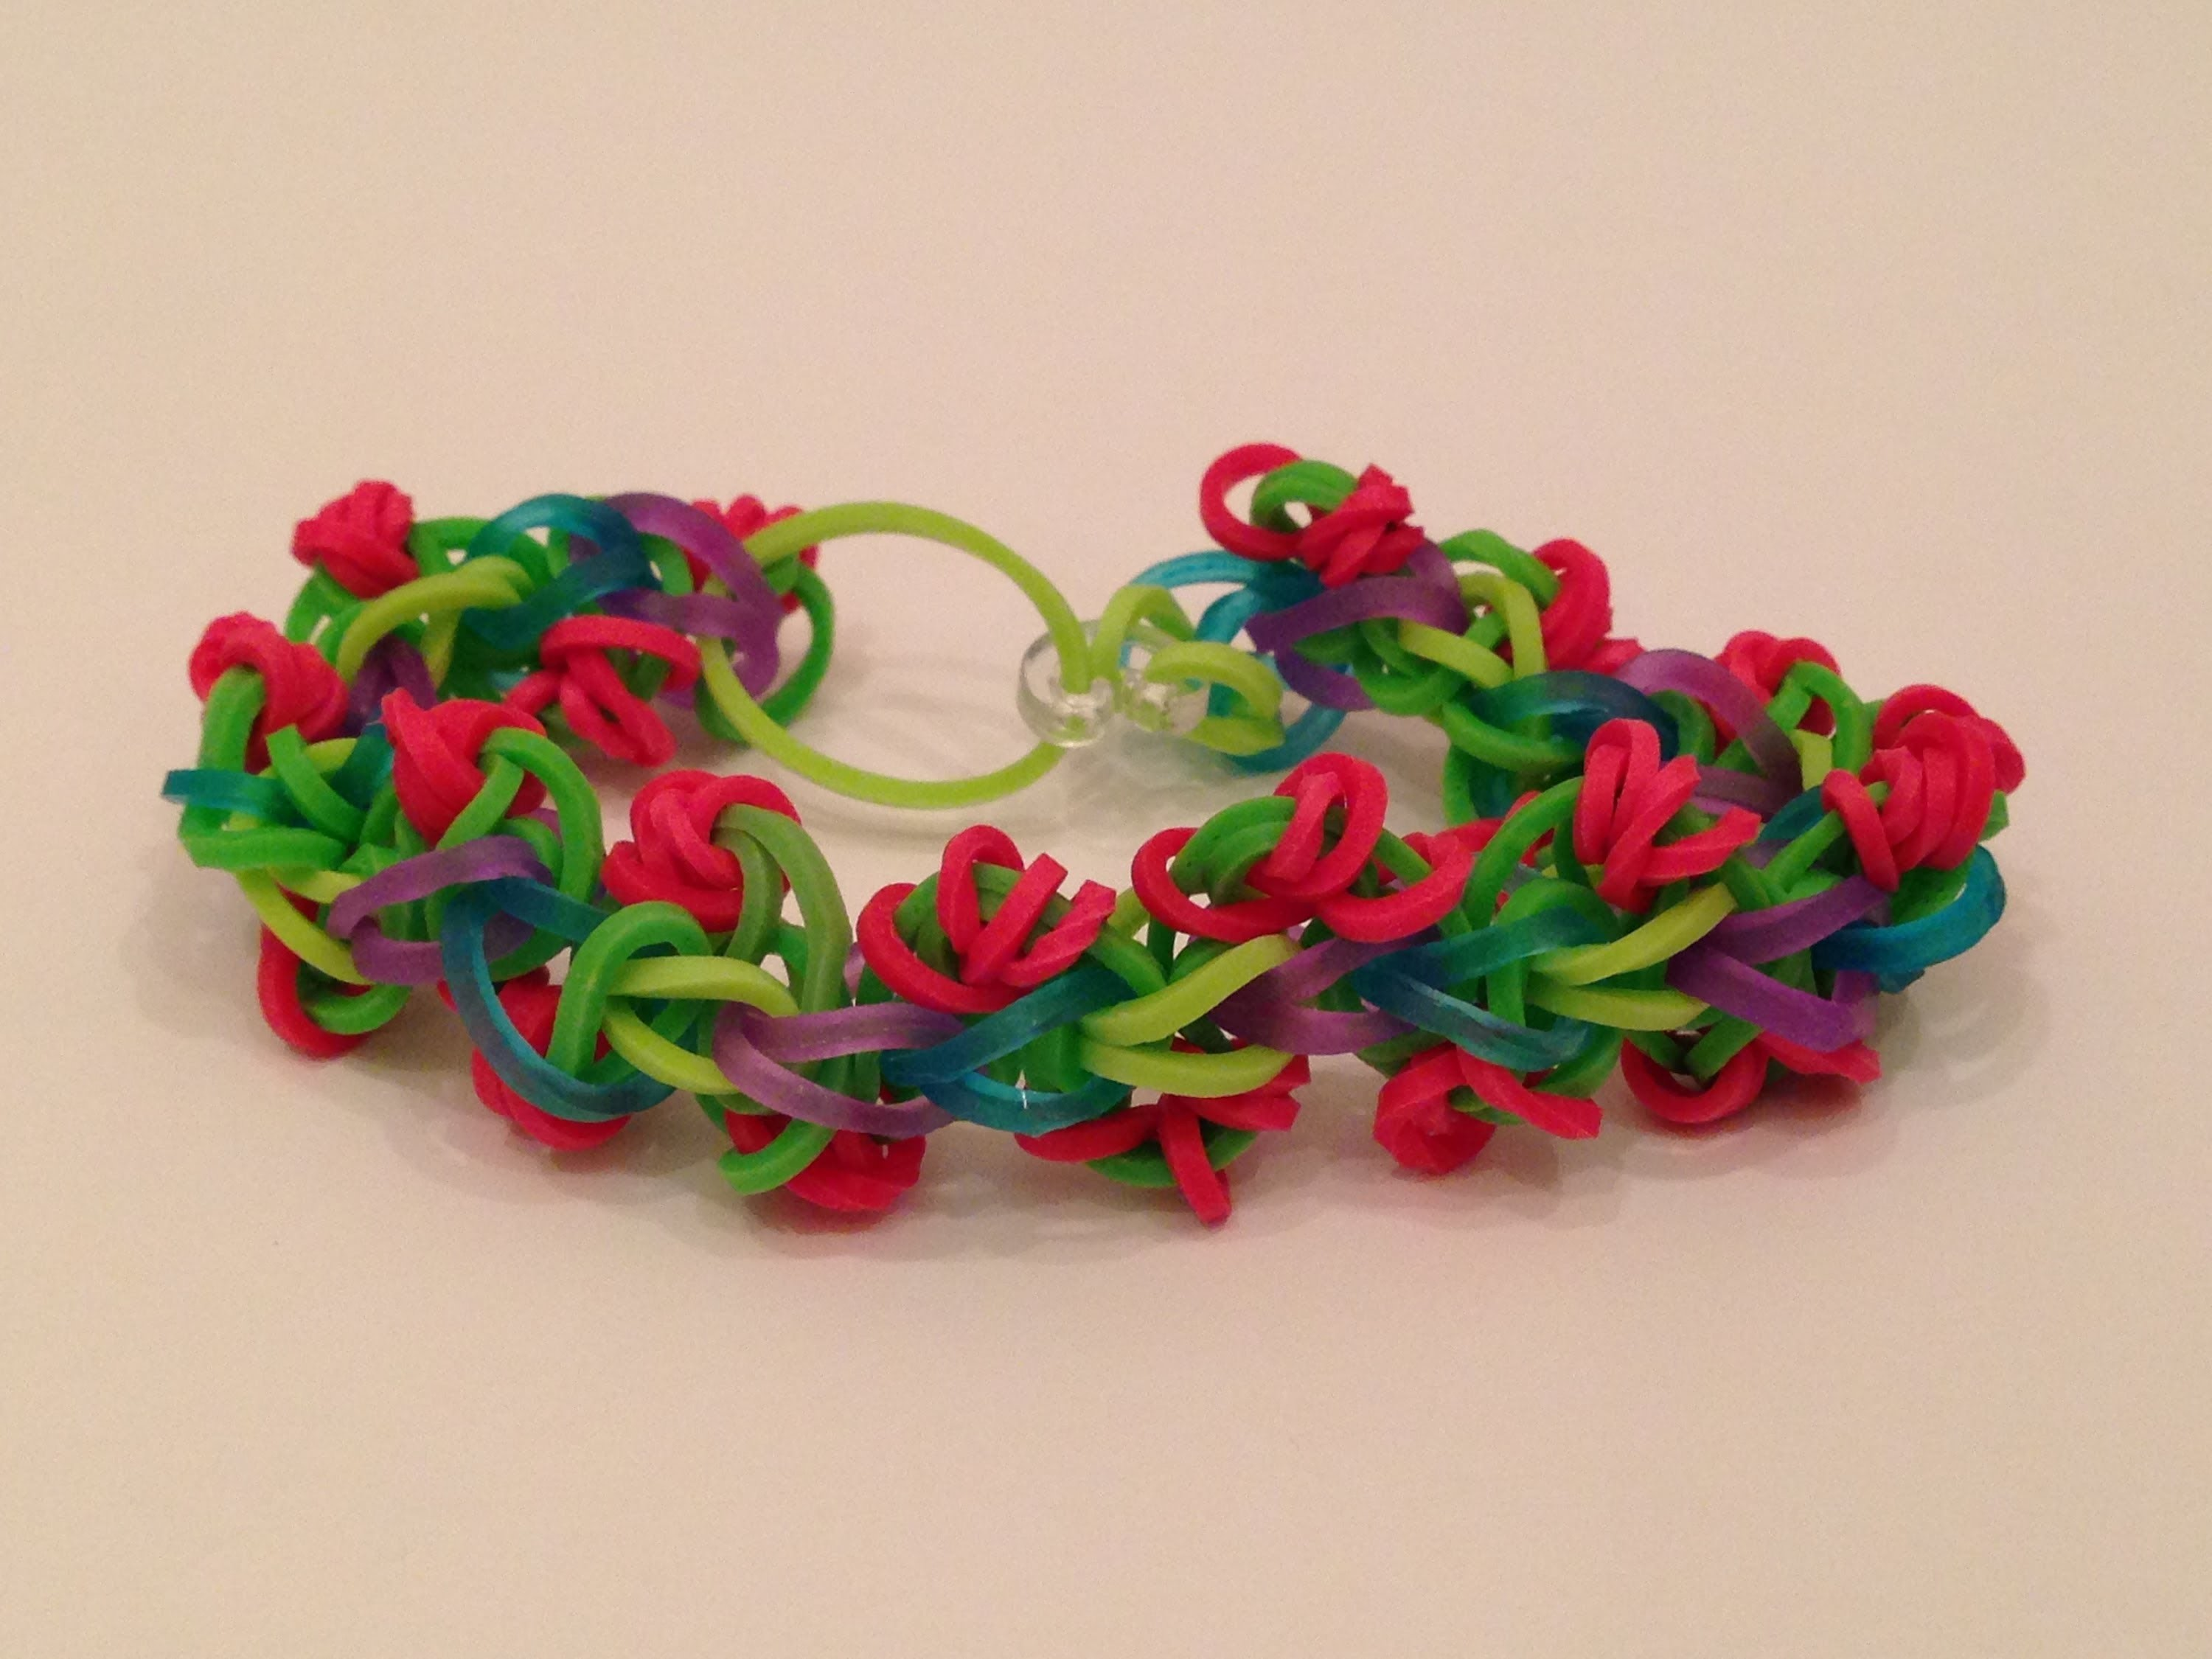 How To Make The Rose Chain Rainbow Loom Bracelet